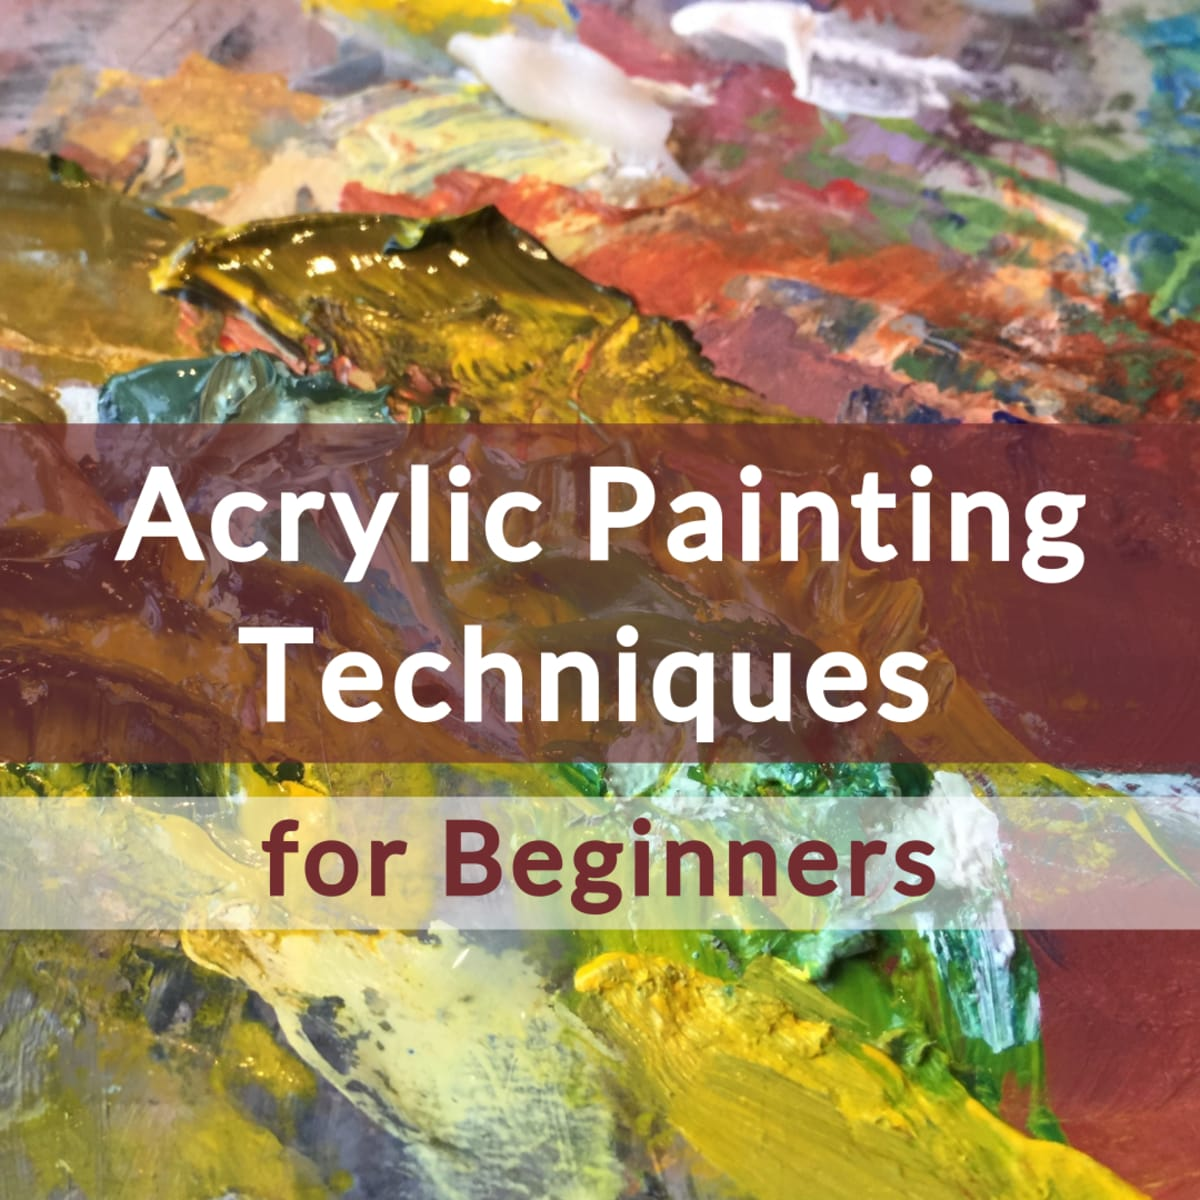 6 Basic Acrylic Painting Techniques For Beginners Feltmagnet Crafts